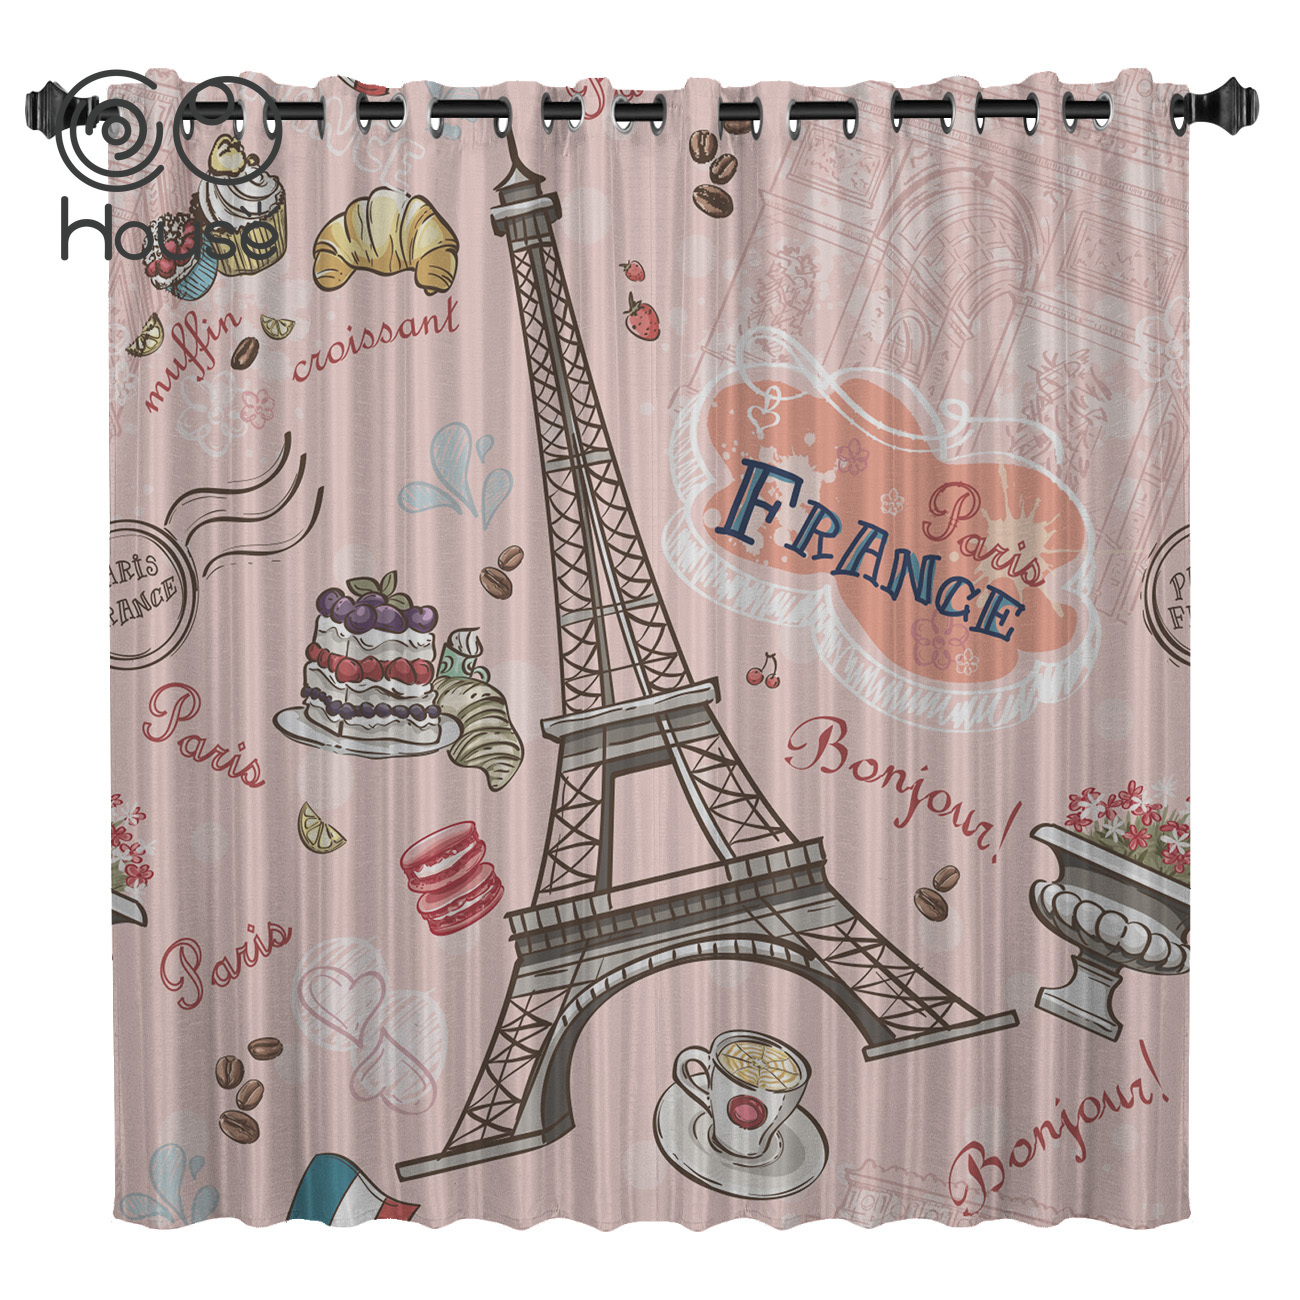 COCOHouse Pink Retro Eiffel Tower Window Curtains Dark Curtain Lights Curtains Bedroom Outdoor Decor Kids Curtain Panels With